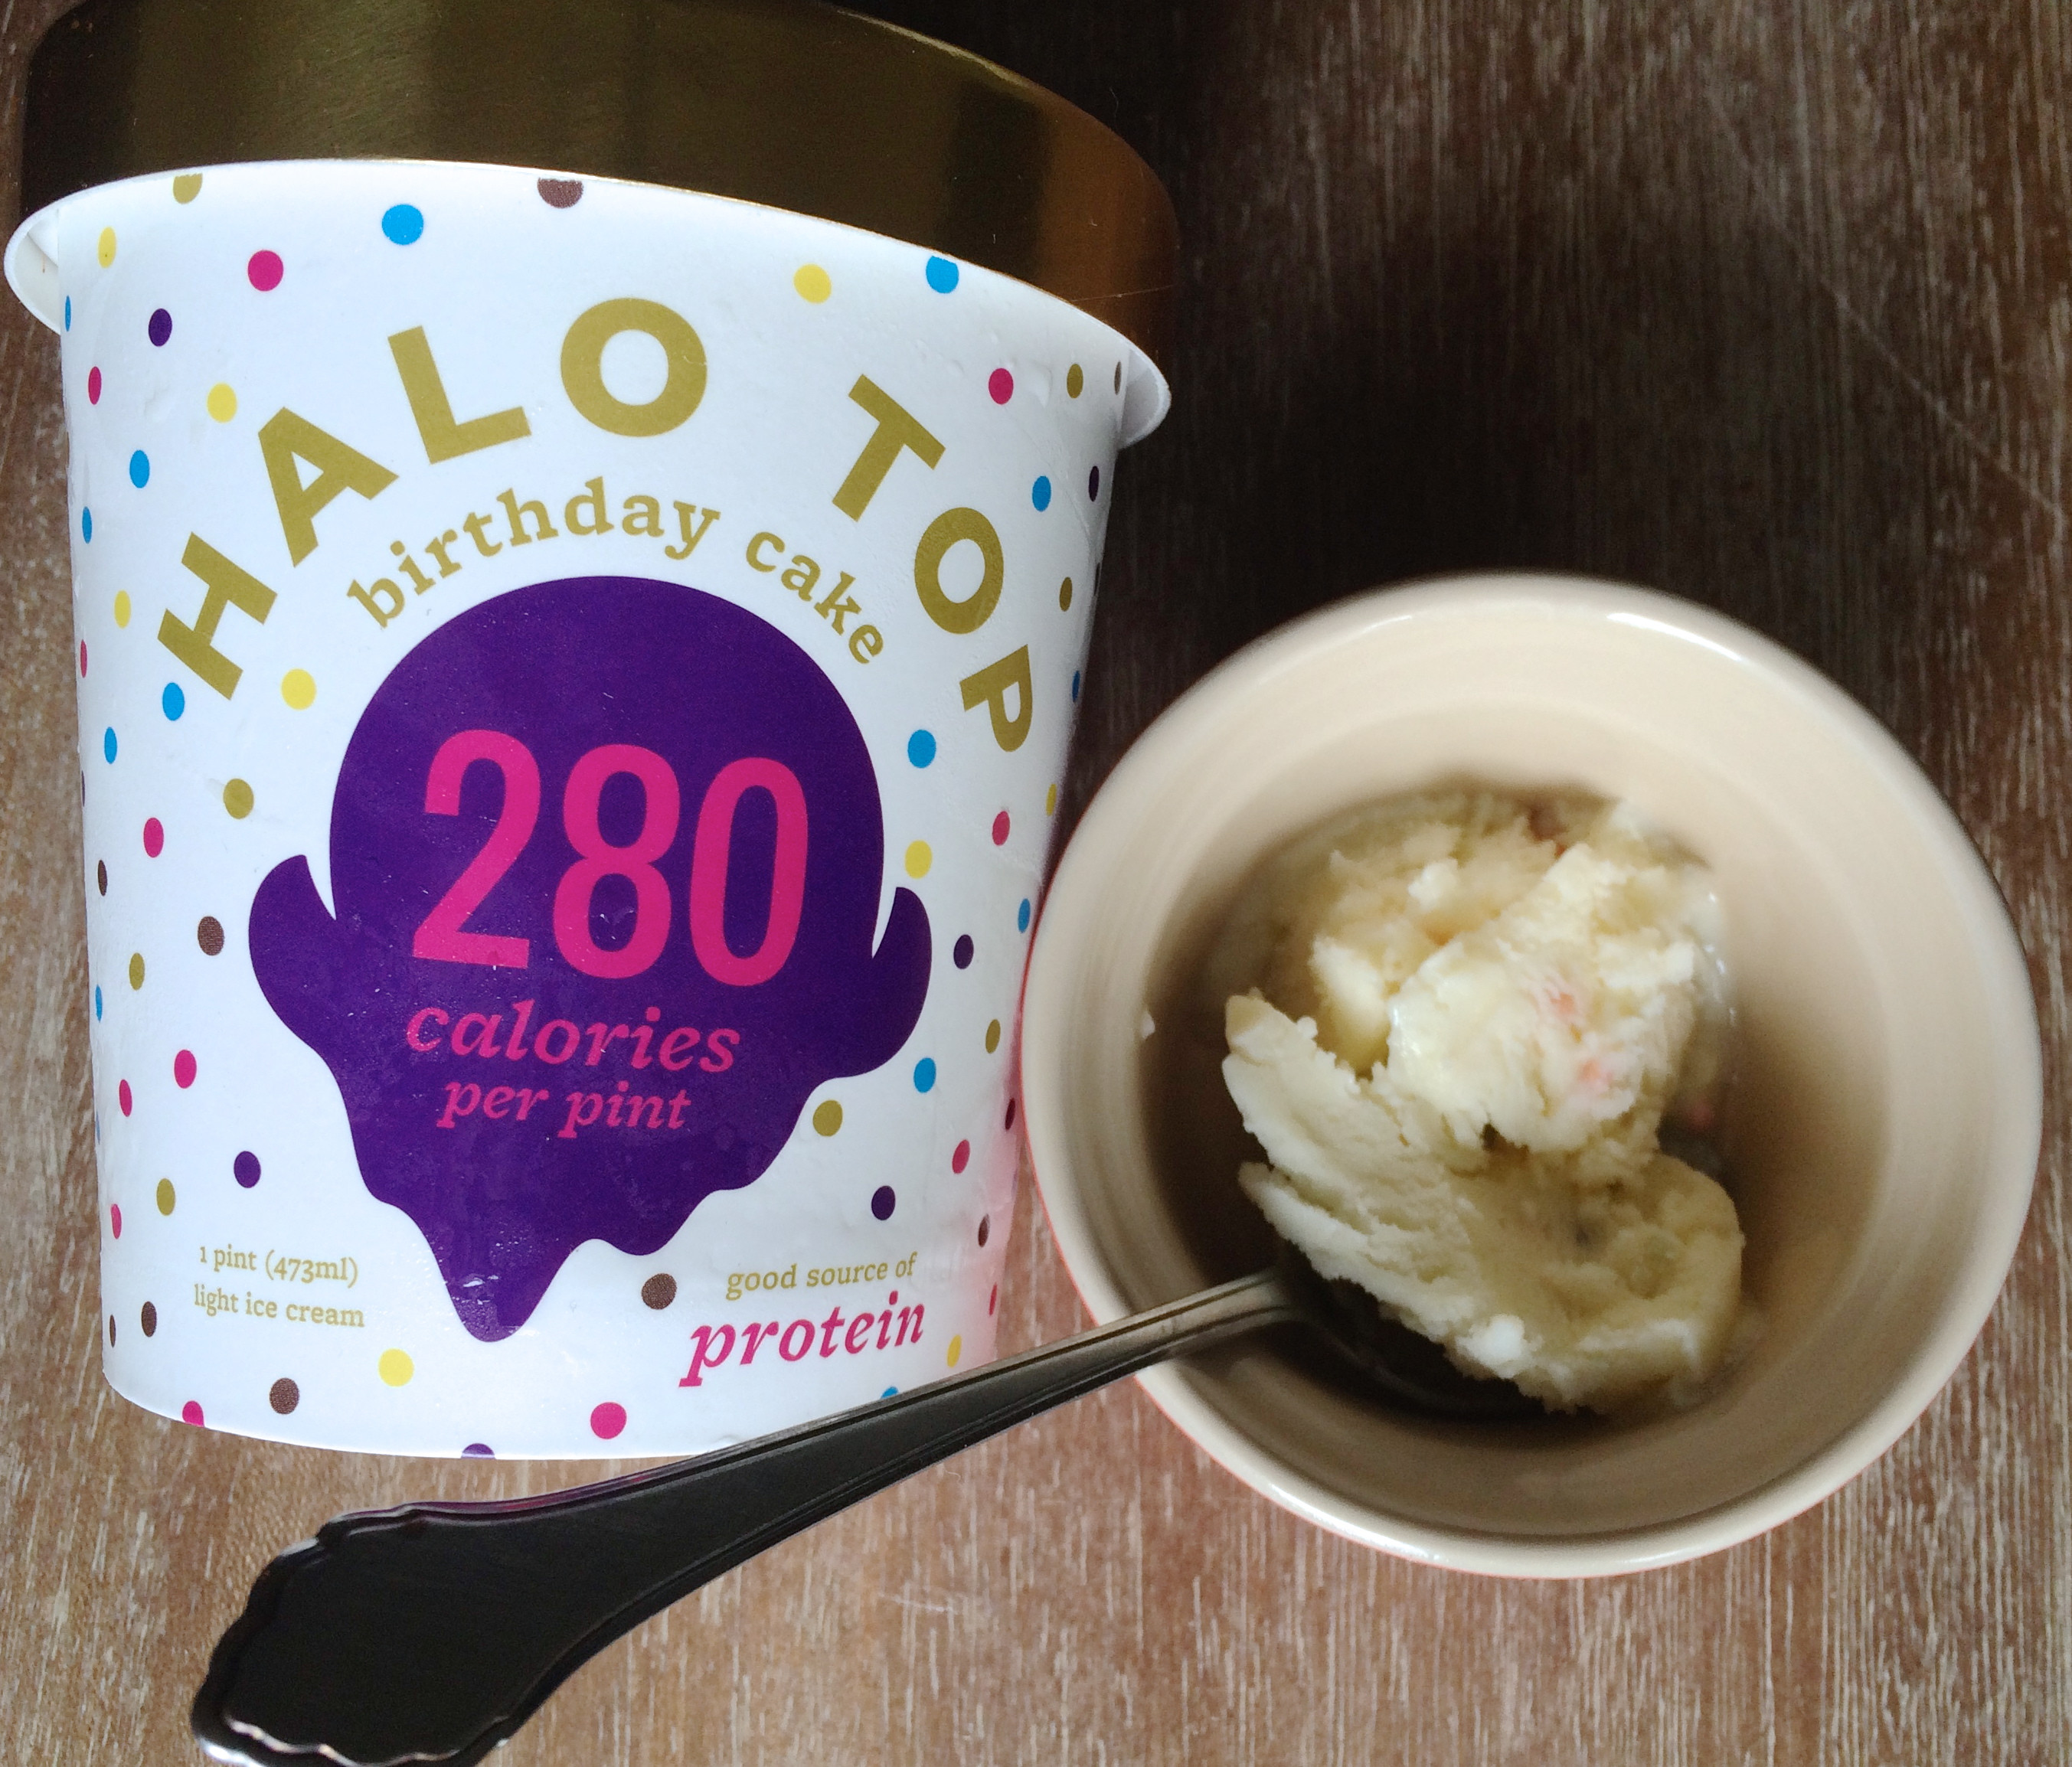 Best ideas about Halo Top Birthday Cake . Save or Pin Best Light Ice Cream Arctic Zero vs Halo Top Ruff Tuff Now.